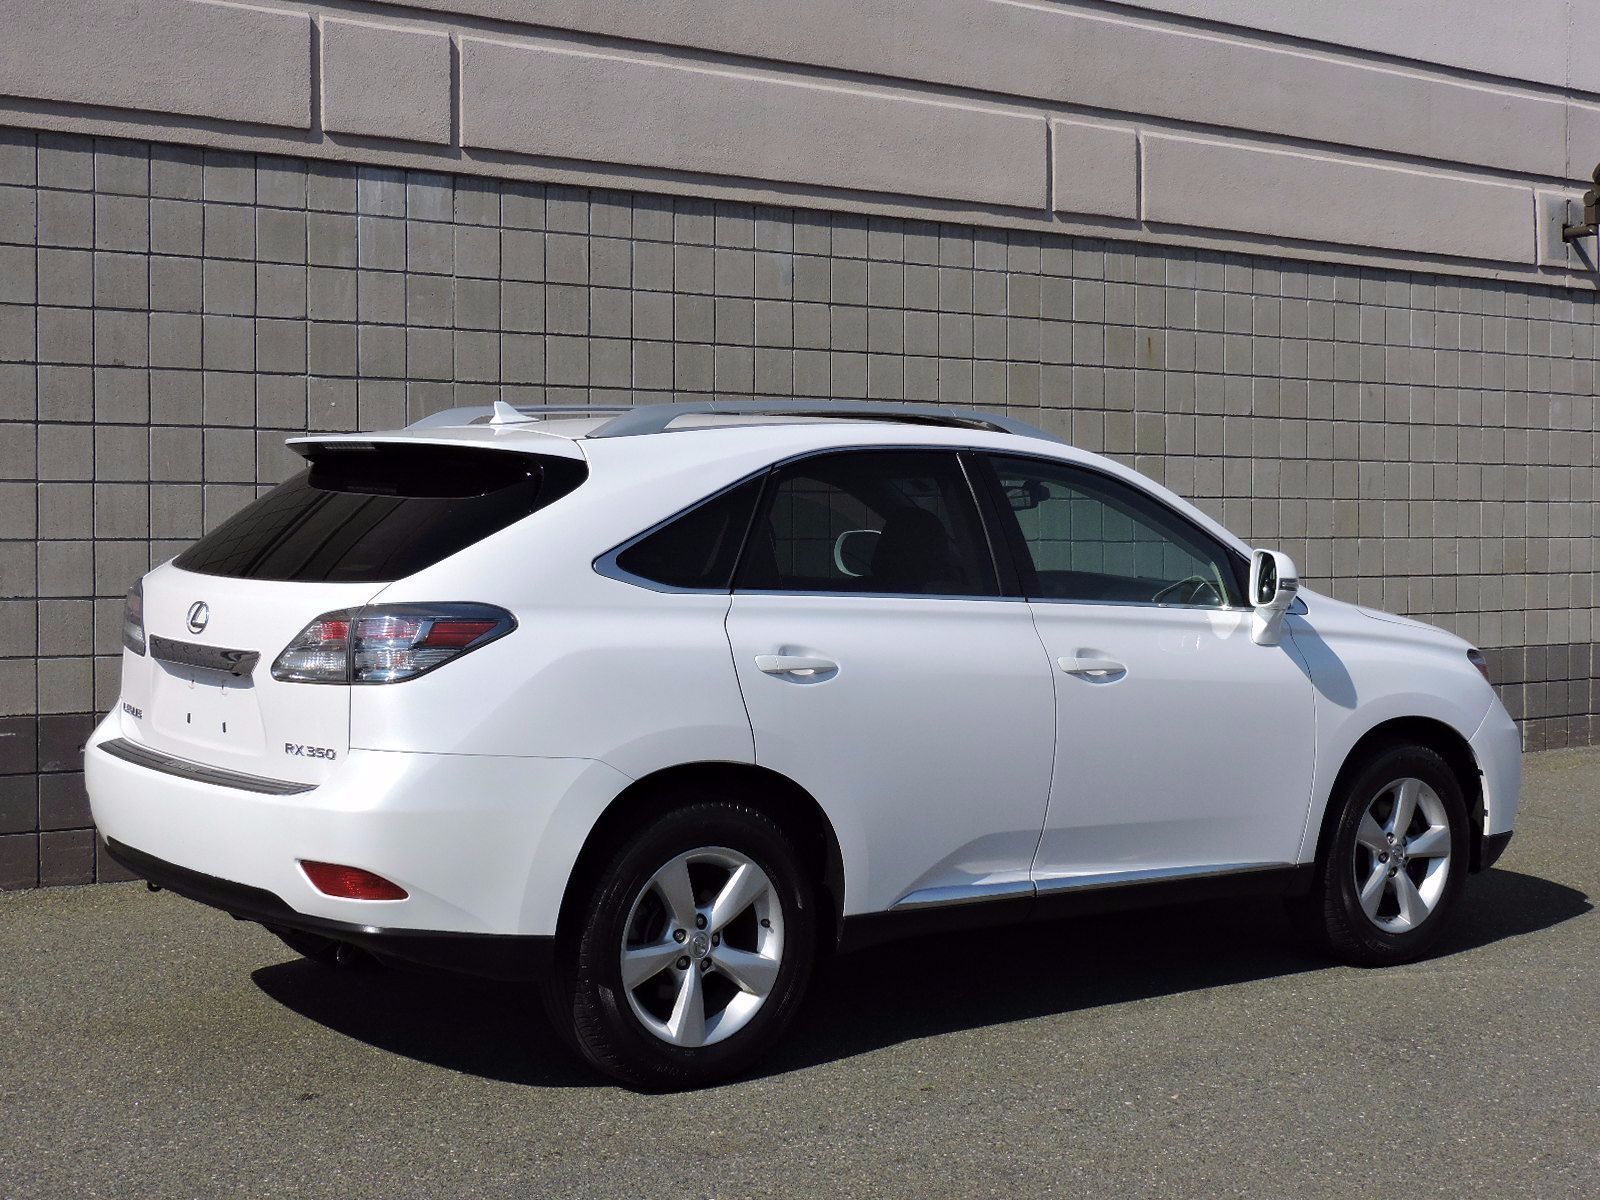 used 2010 lexus rx 350 at auto house usa saugus. Black Bedroom Furniture Sets. Home Design Ideas